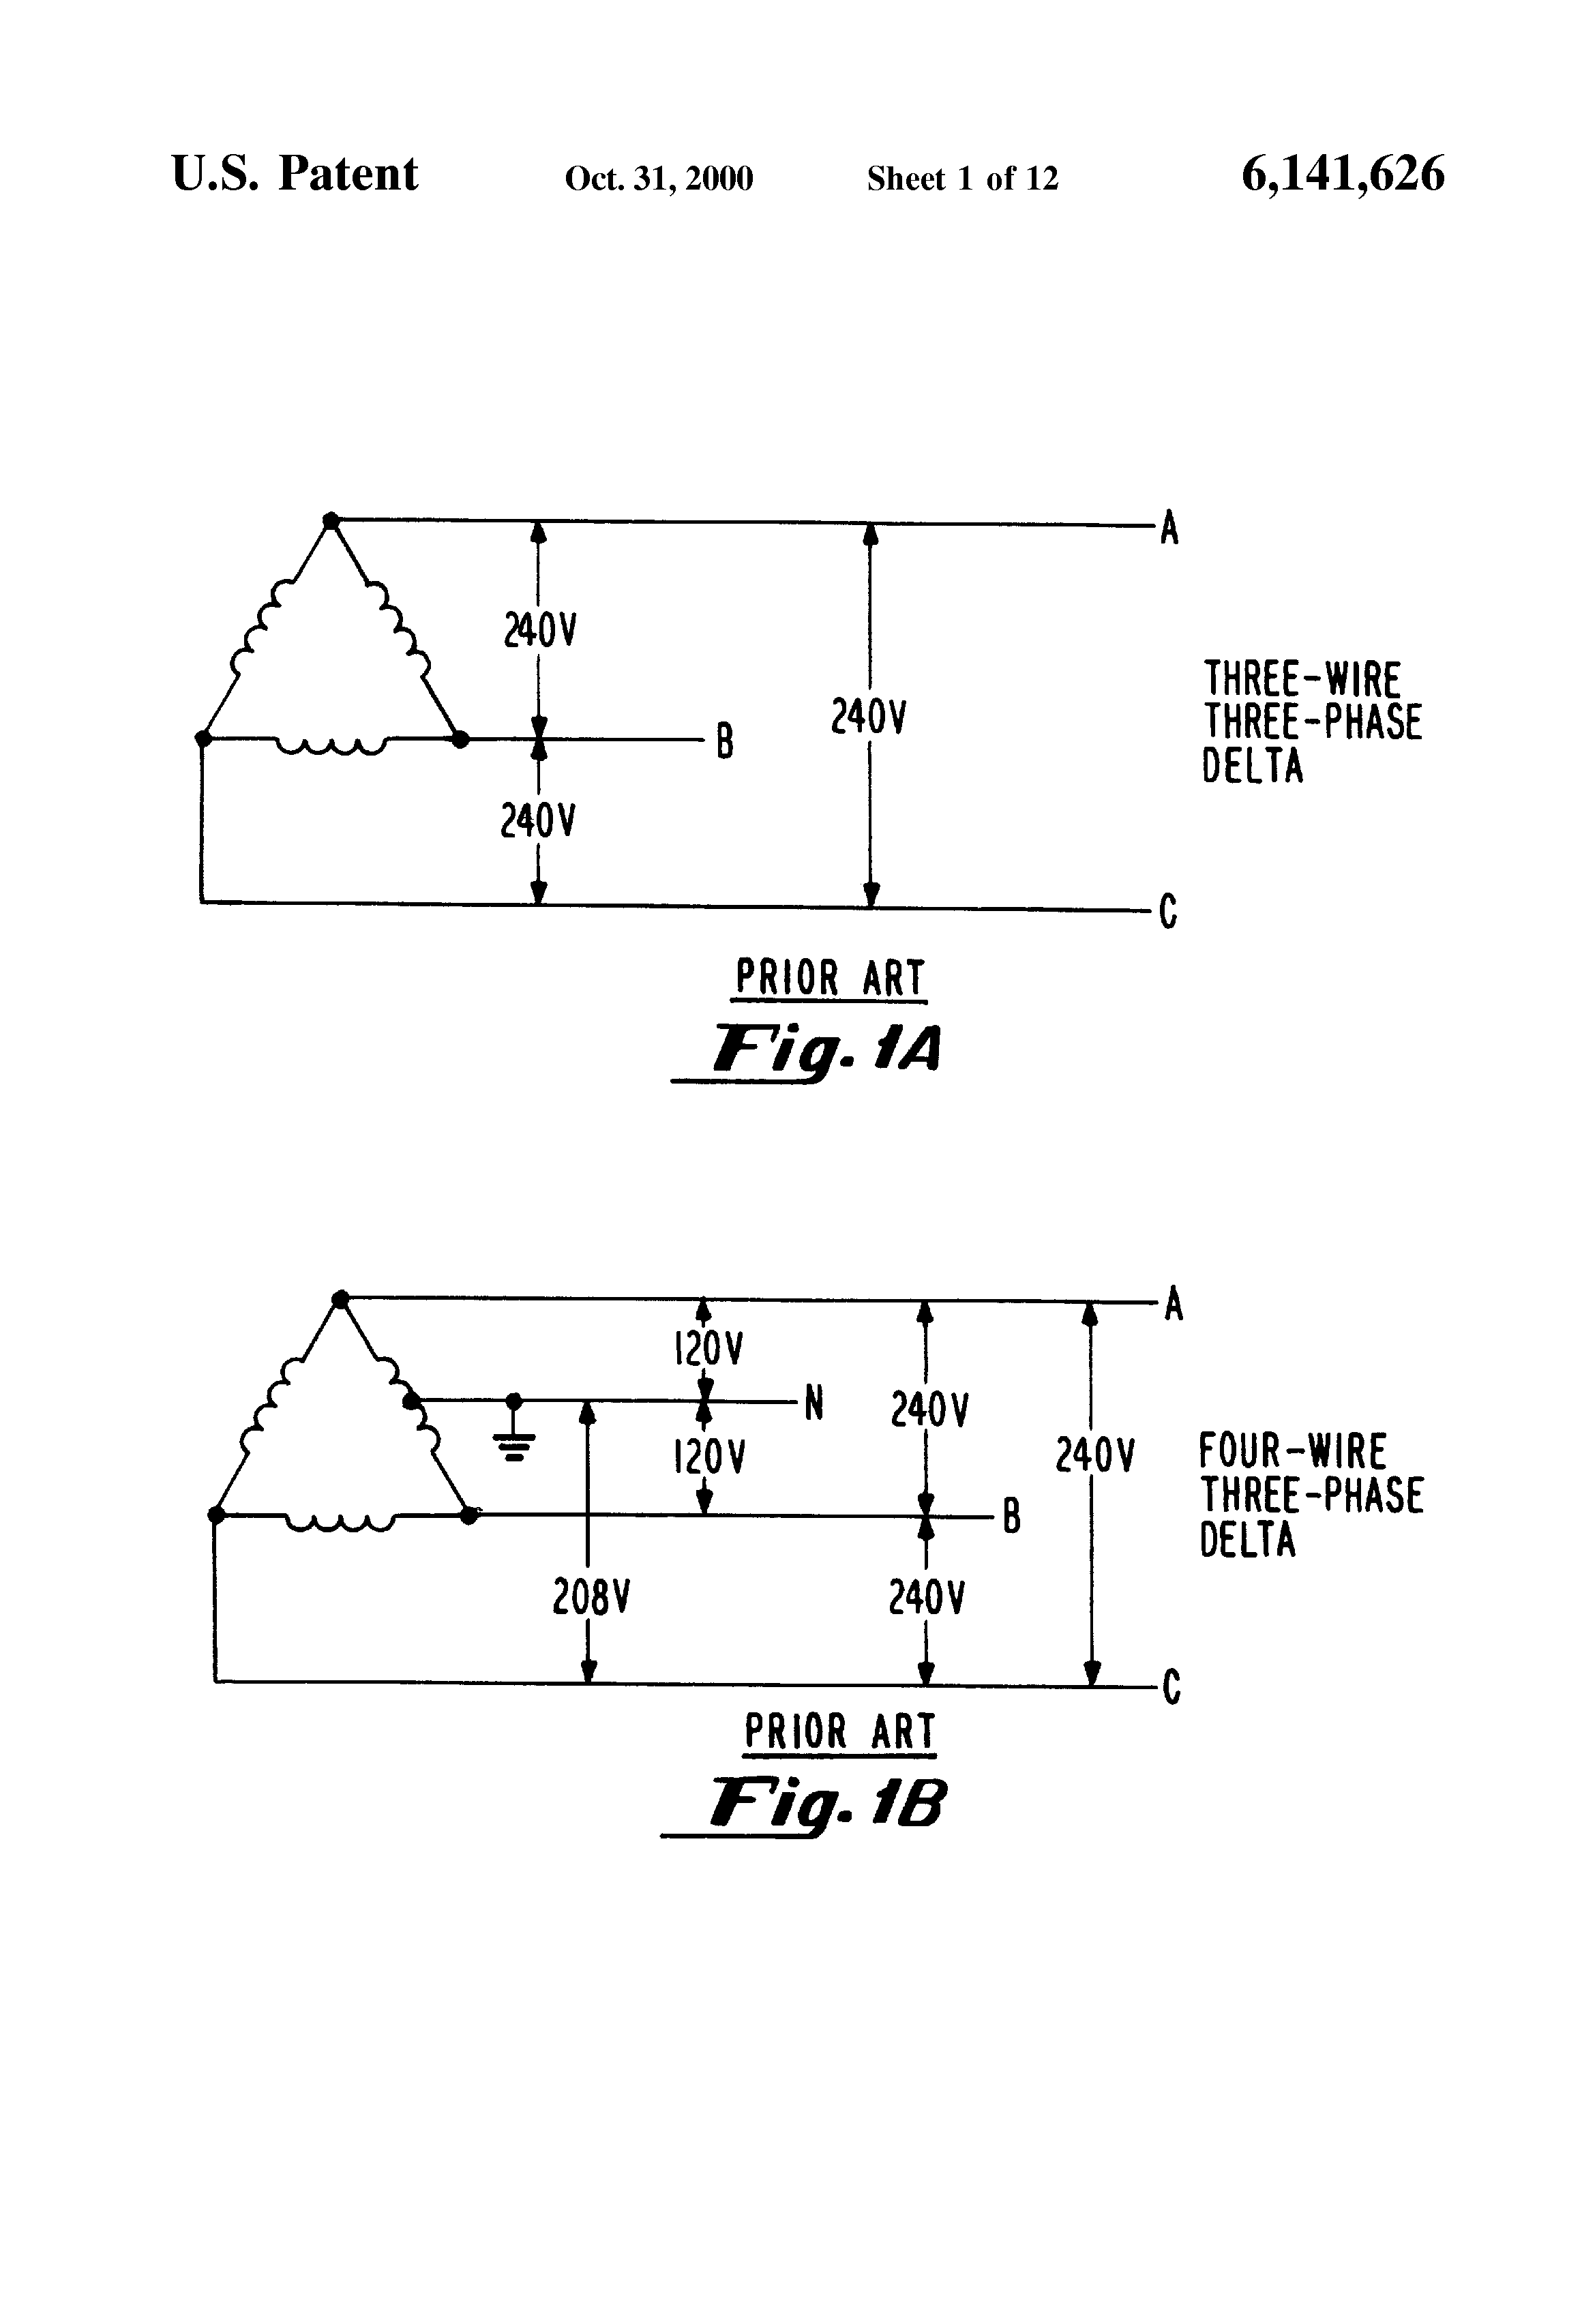 3 Phase 4 Wire Energy Meter Connection Diagram 46 Wiring How To 3phase Kwh Electrical Technology Us6141626 1 Patent Two Element Having Systems For